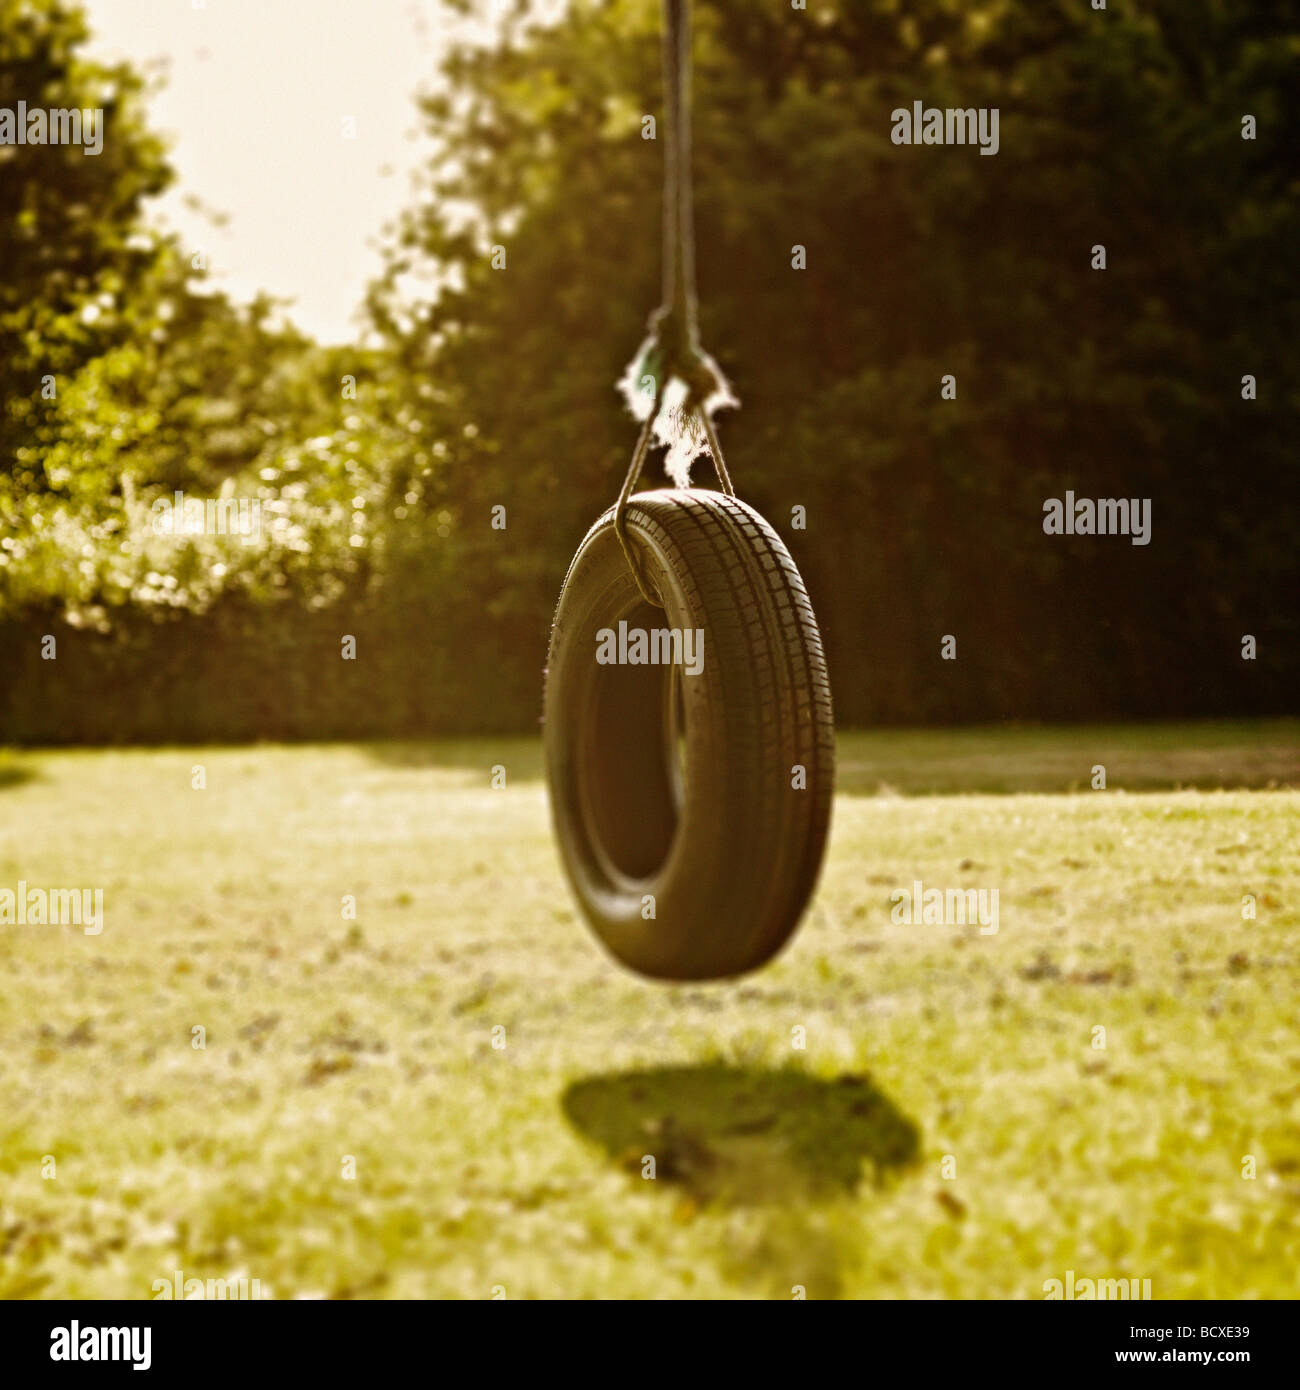 Tyre Swing with minimal focus on the top of the tyre and a nostalgic feel. - Stock Image